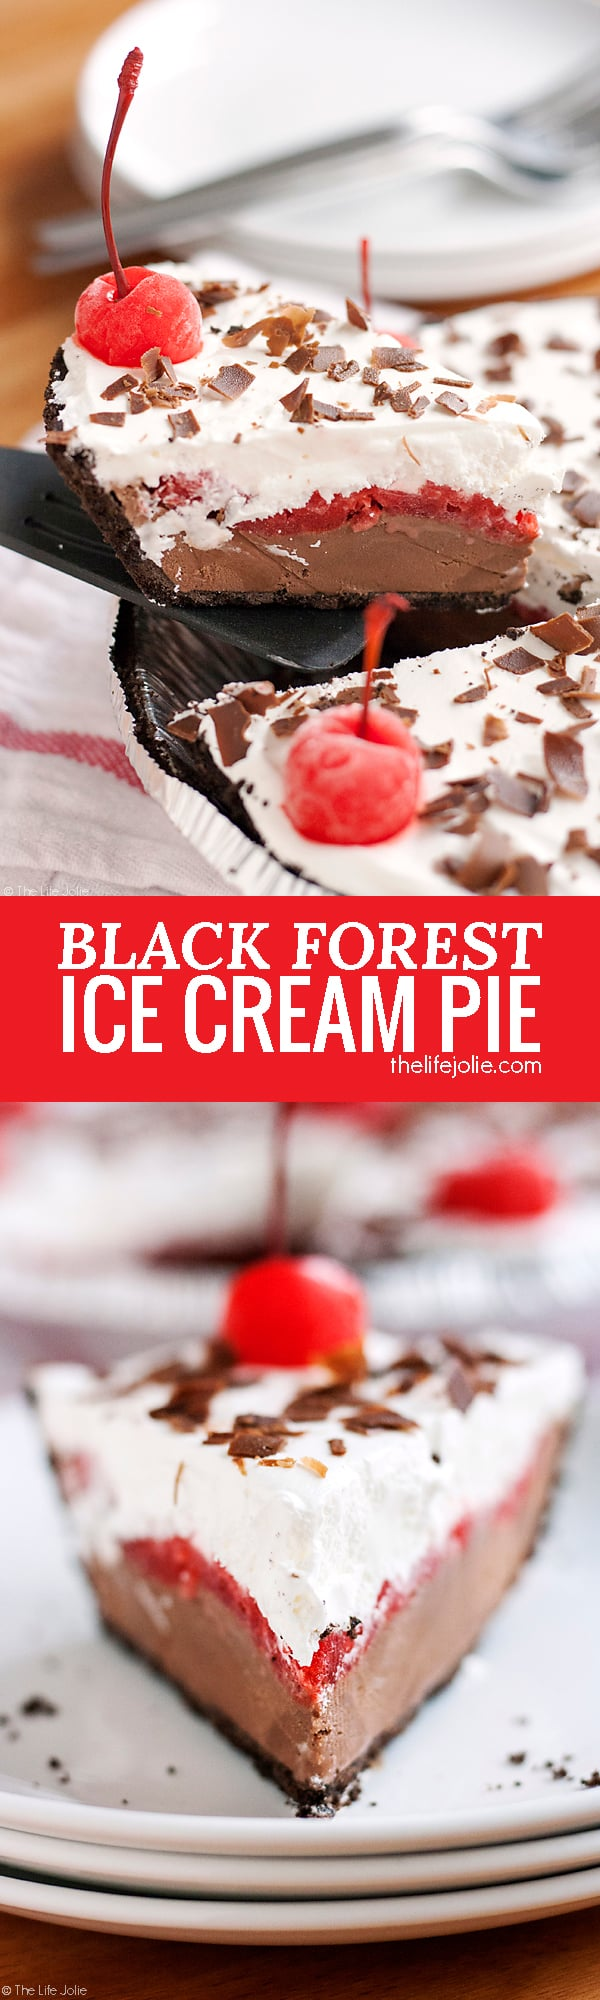 "This Black Forest Ice Cream Pie is a quick and easy no bake dessert recipe. Made with an Oreo Cookie crust, chocolate ice cream, maraschino cherries and whipped topping this pie is a pretty addition to any dessert table! It's perfect for the holidays or to keep in the freezer ""just because""!"